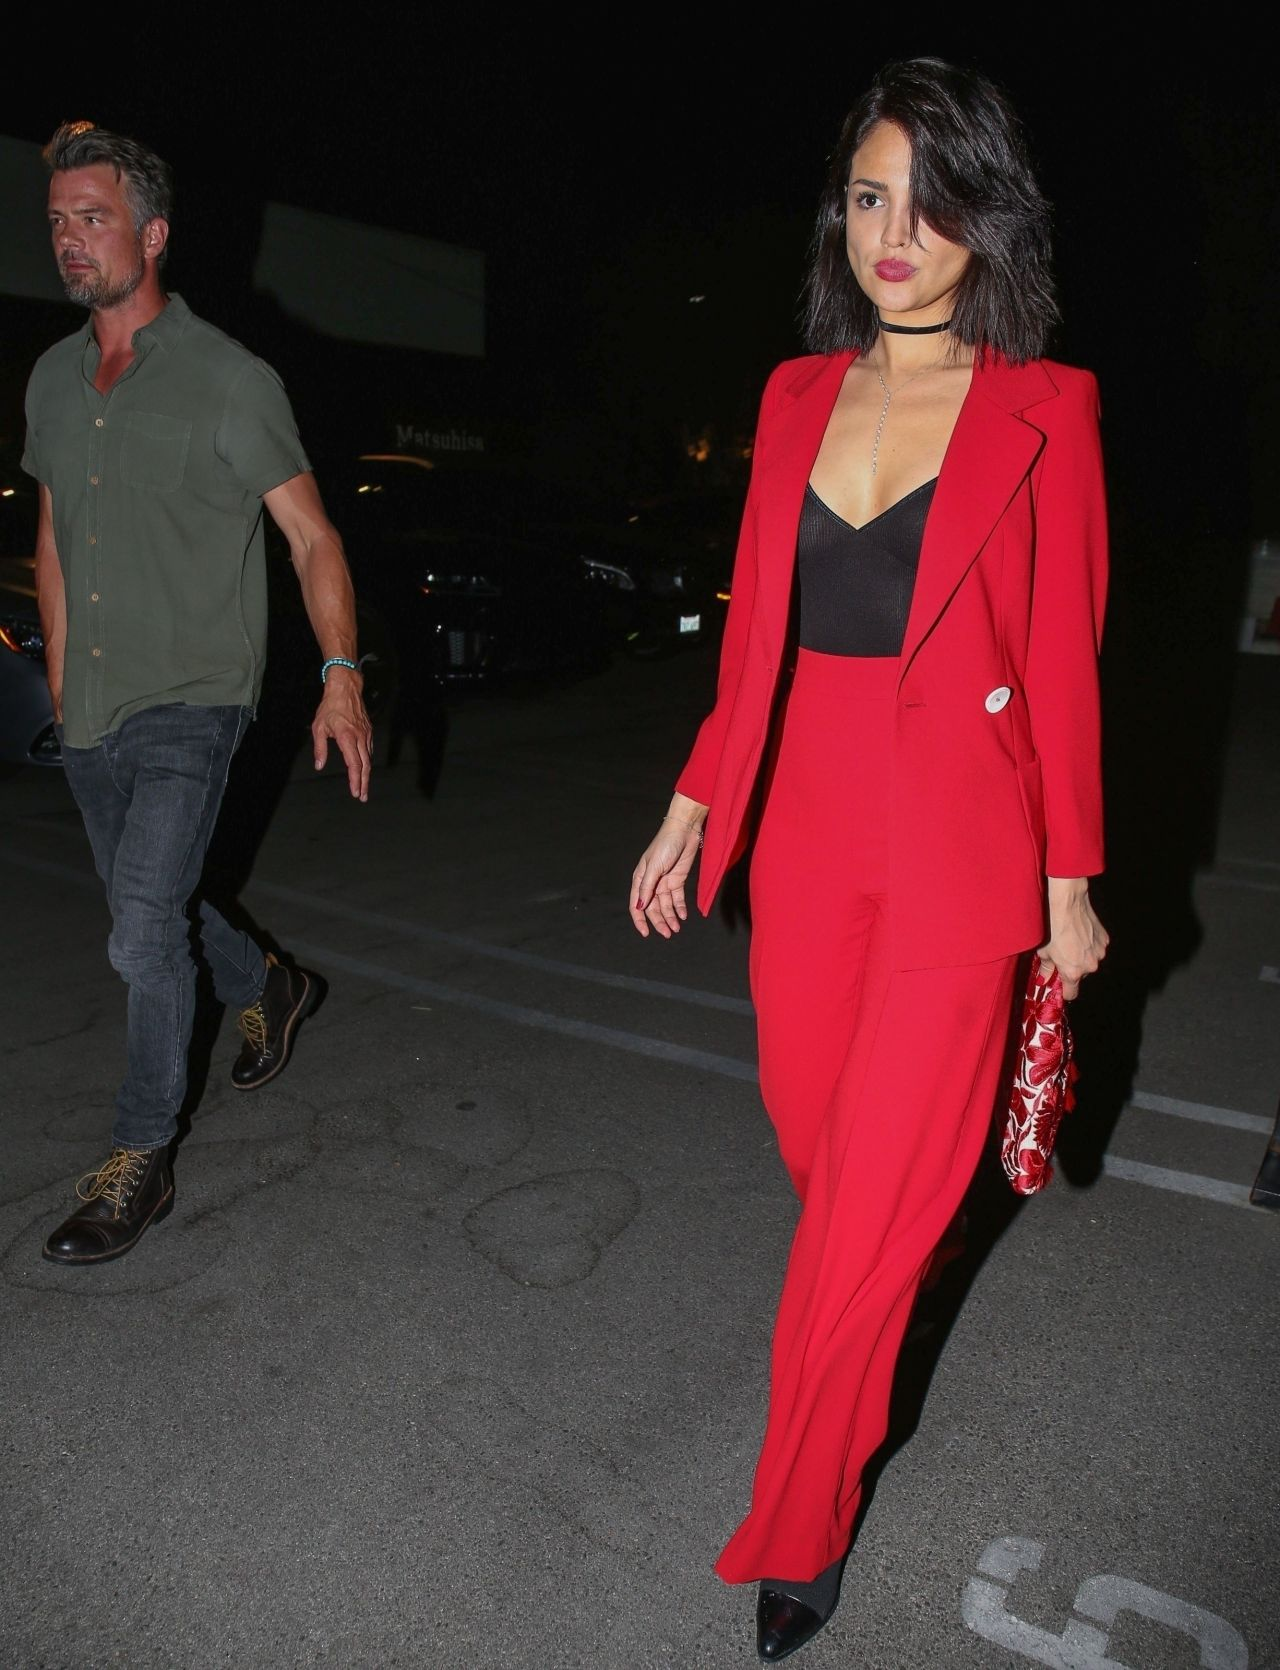 Eiza Gonzalez And Josh Duhamel Date Night For The First